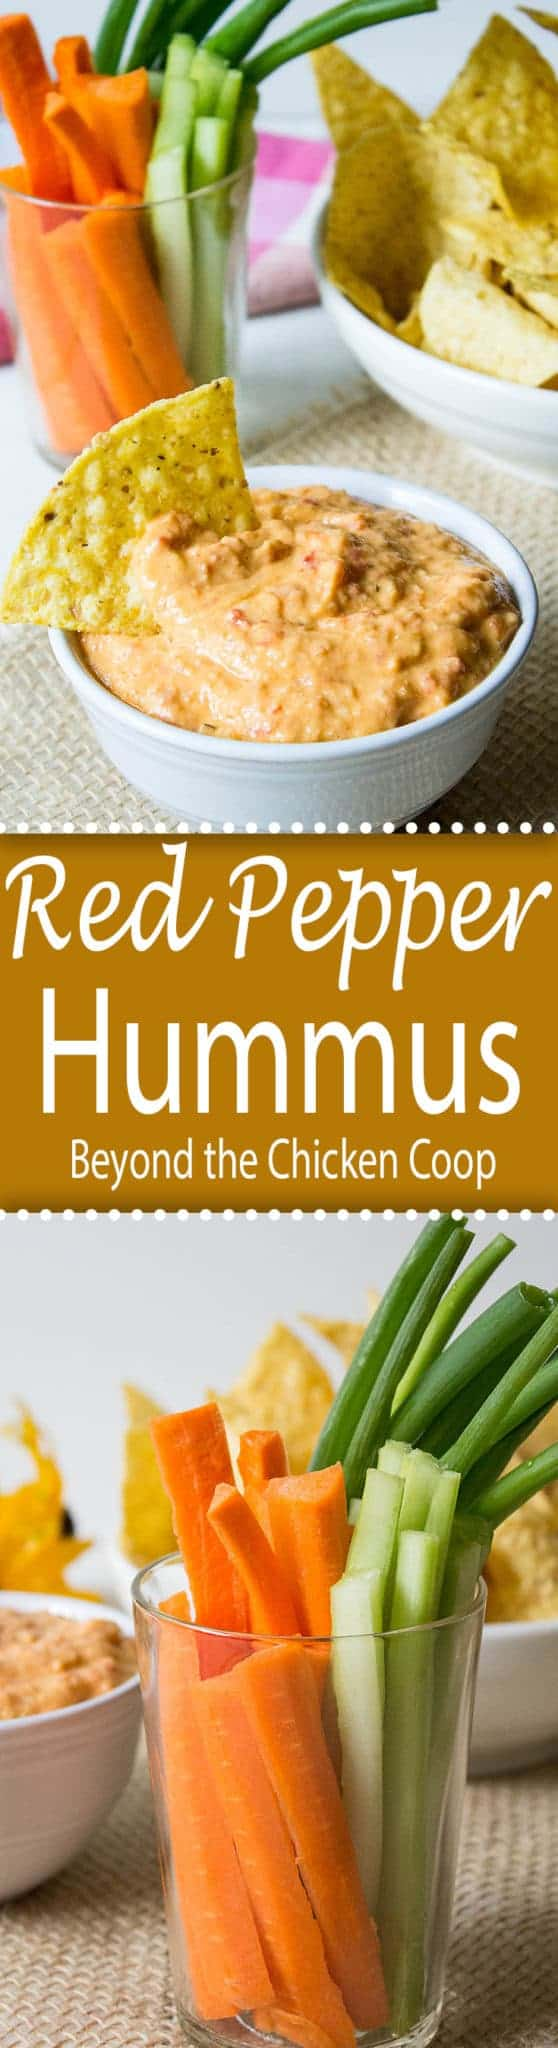 Roasted Red Bell Pepper Hummus - Beyond The Chicken Coop